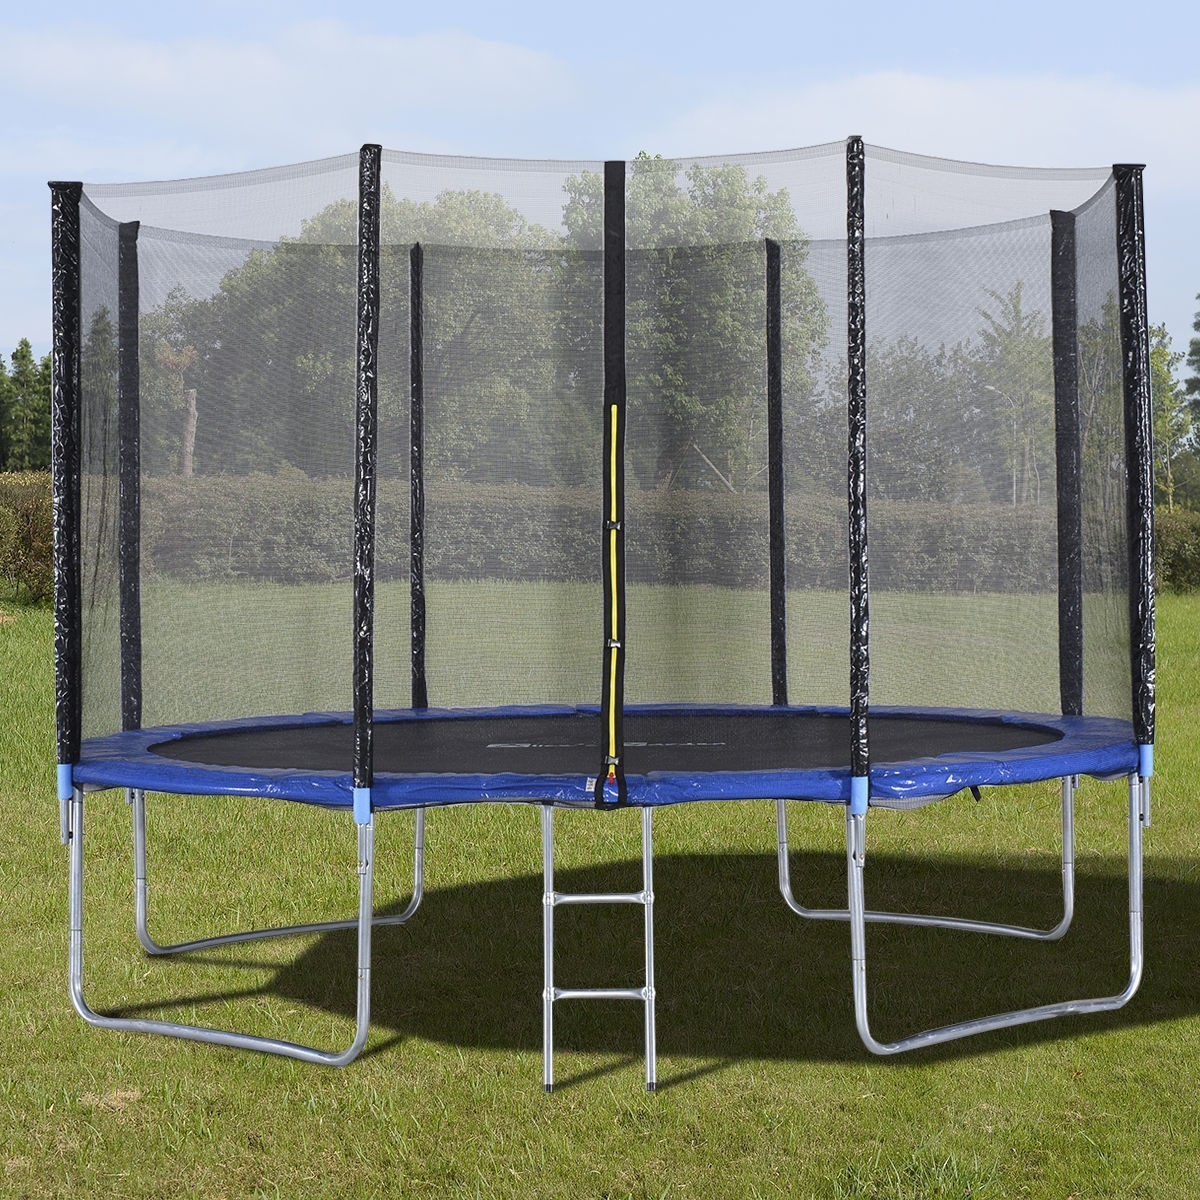 12 ft Trampoline Combo w/ Safety Enclosure Net, Spring Pad & Ladder